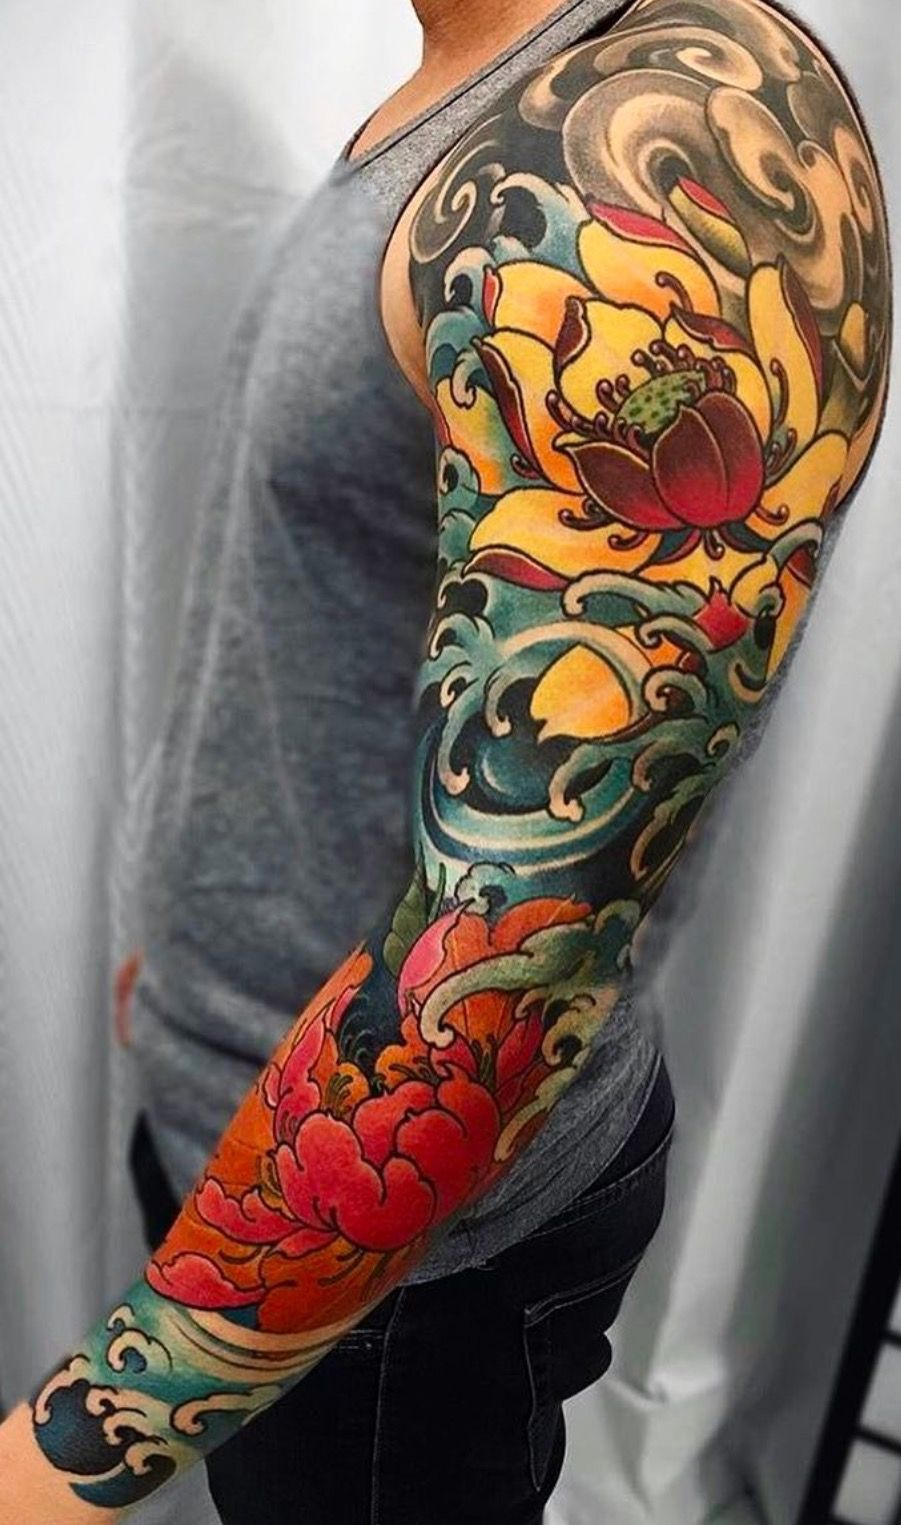 e70da9af9 Crashing water and clouds neo-traditional Japanese Lotus Tattoo, Koi Fish  Tattoo, Japanese